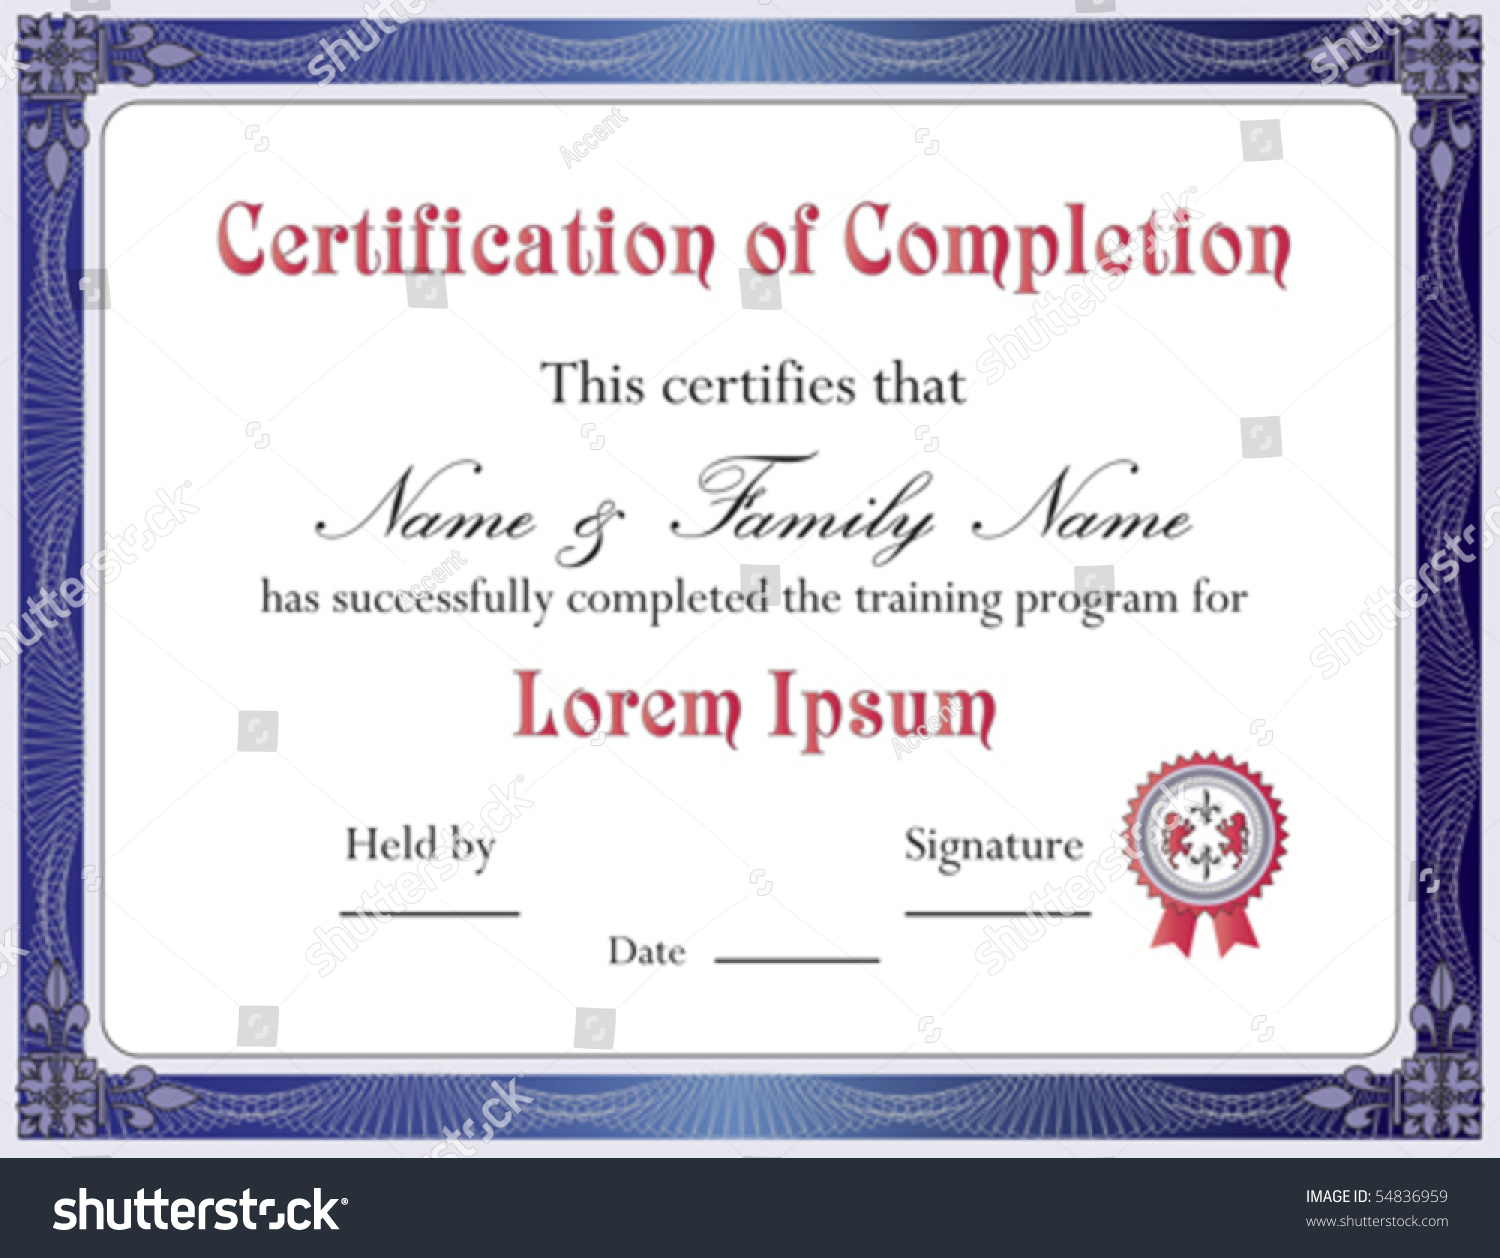 Certificate completion template vector format stock vector certificate of completion template vector format yadclub Gallery